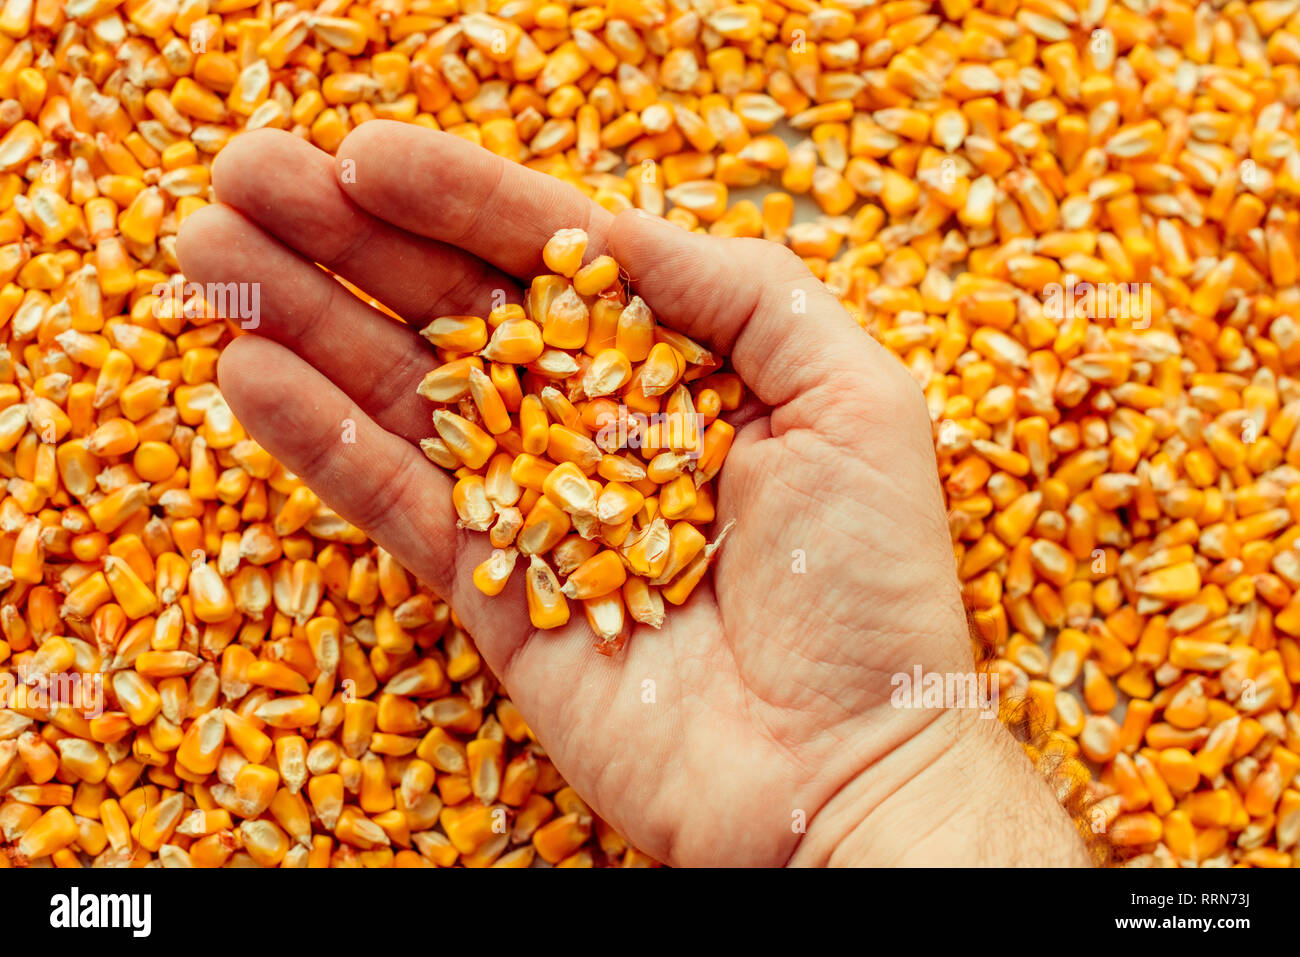 Farmer handful of harvested corn kernels, concept of abundance and great yield after successful harvest - Stock Image